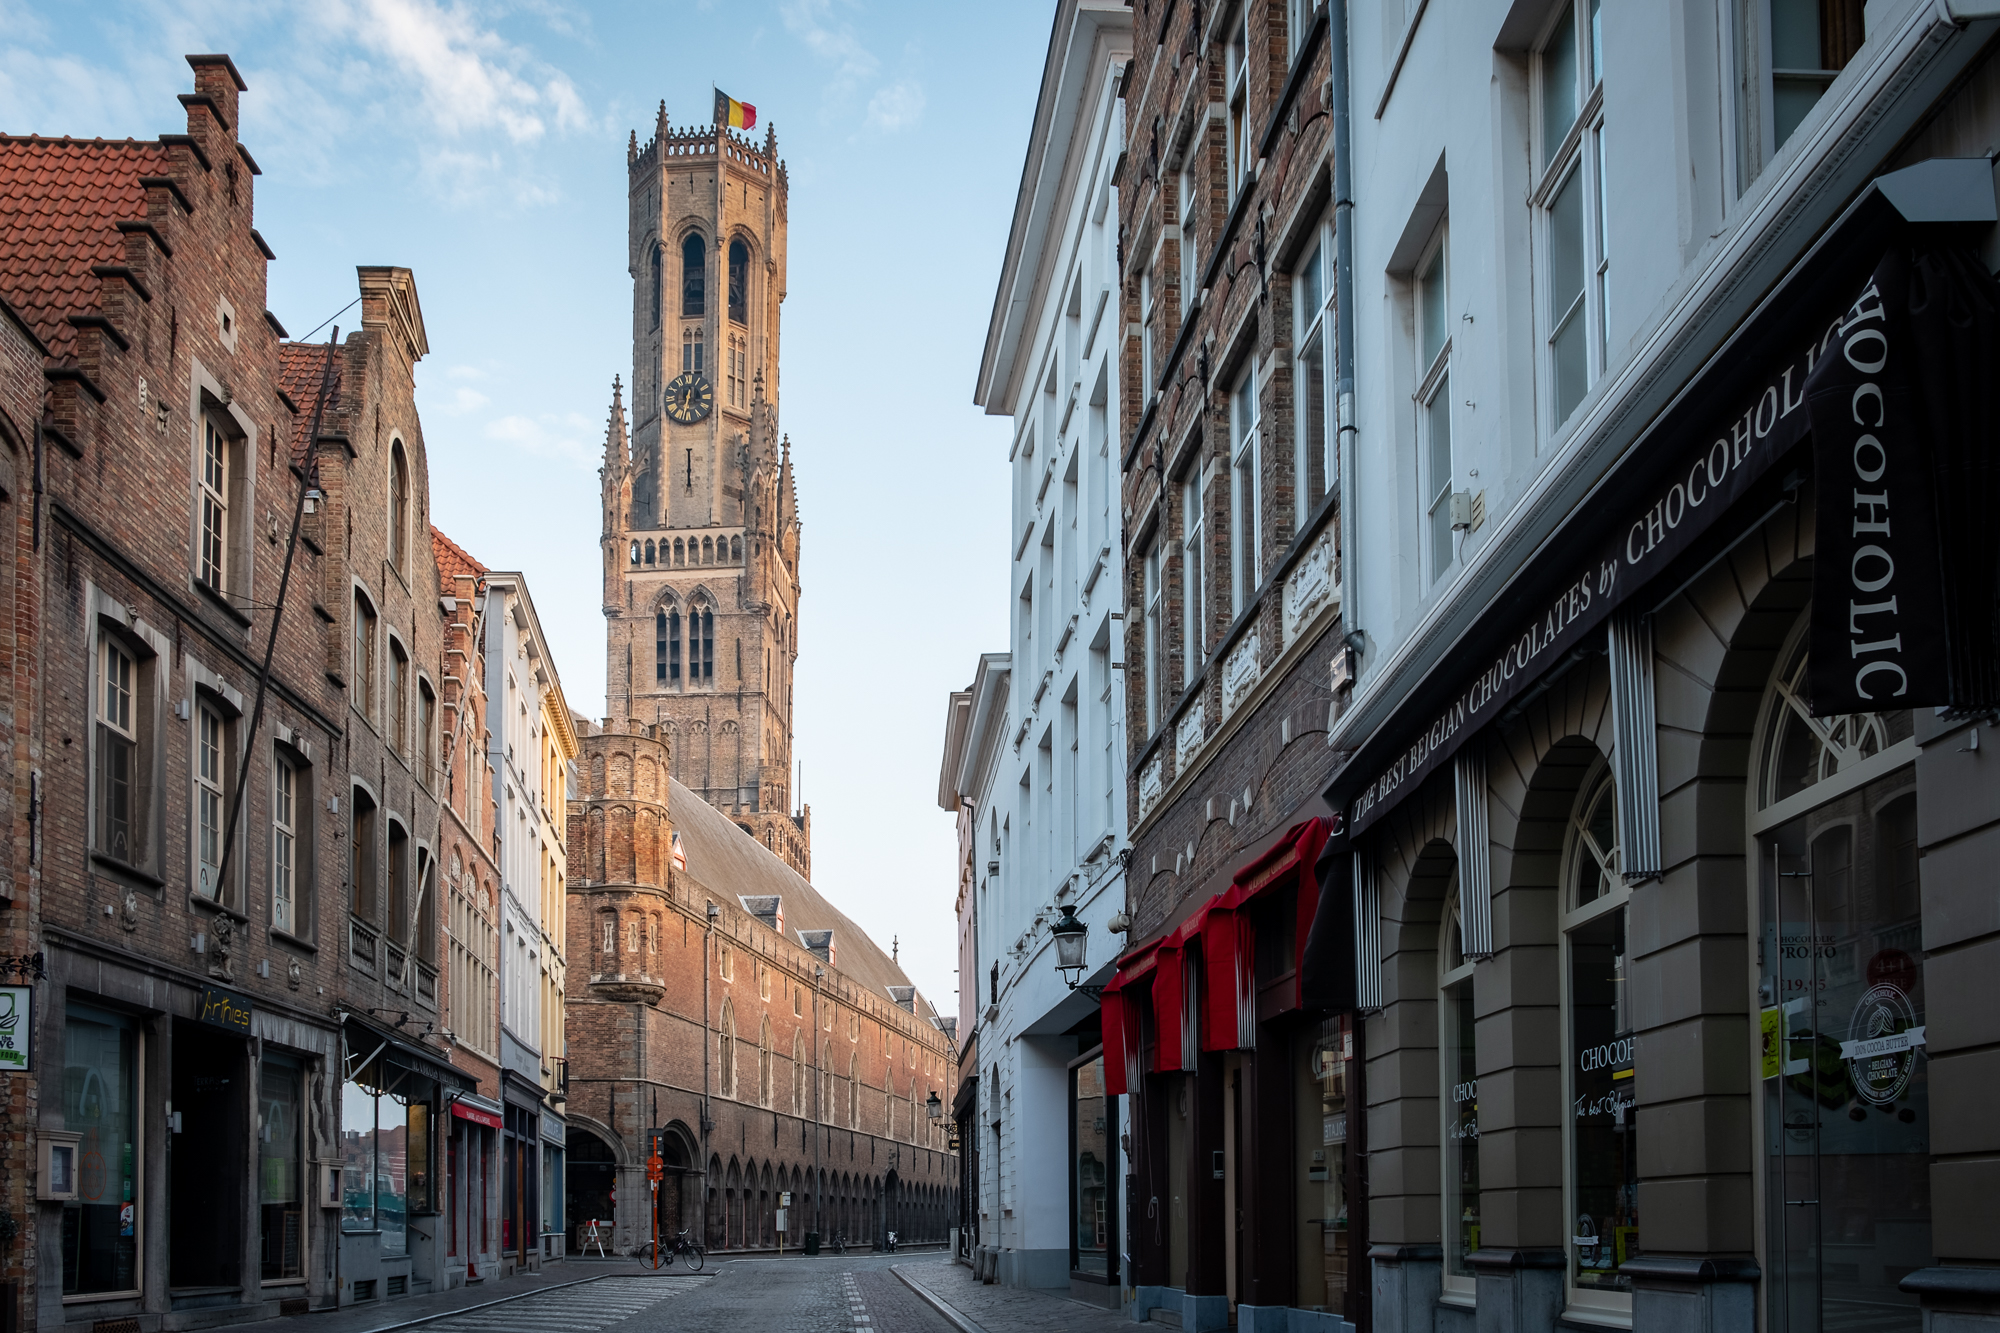 A photo of the Belfry Tower in Bruges, Belgium taken by Trevor Sherwin